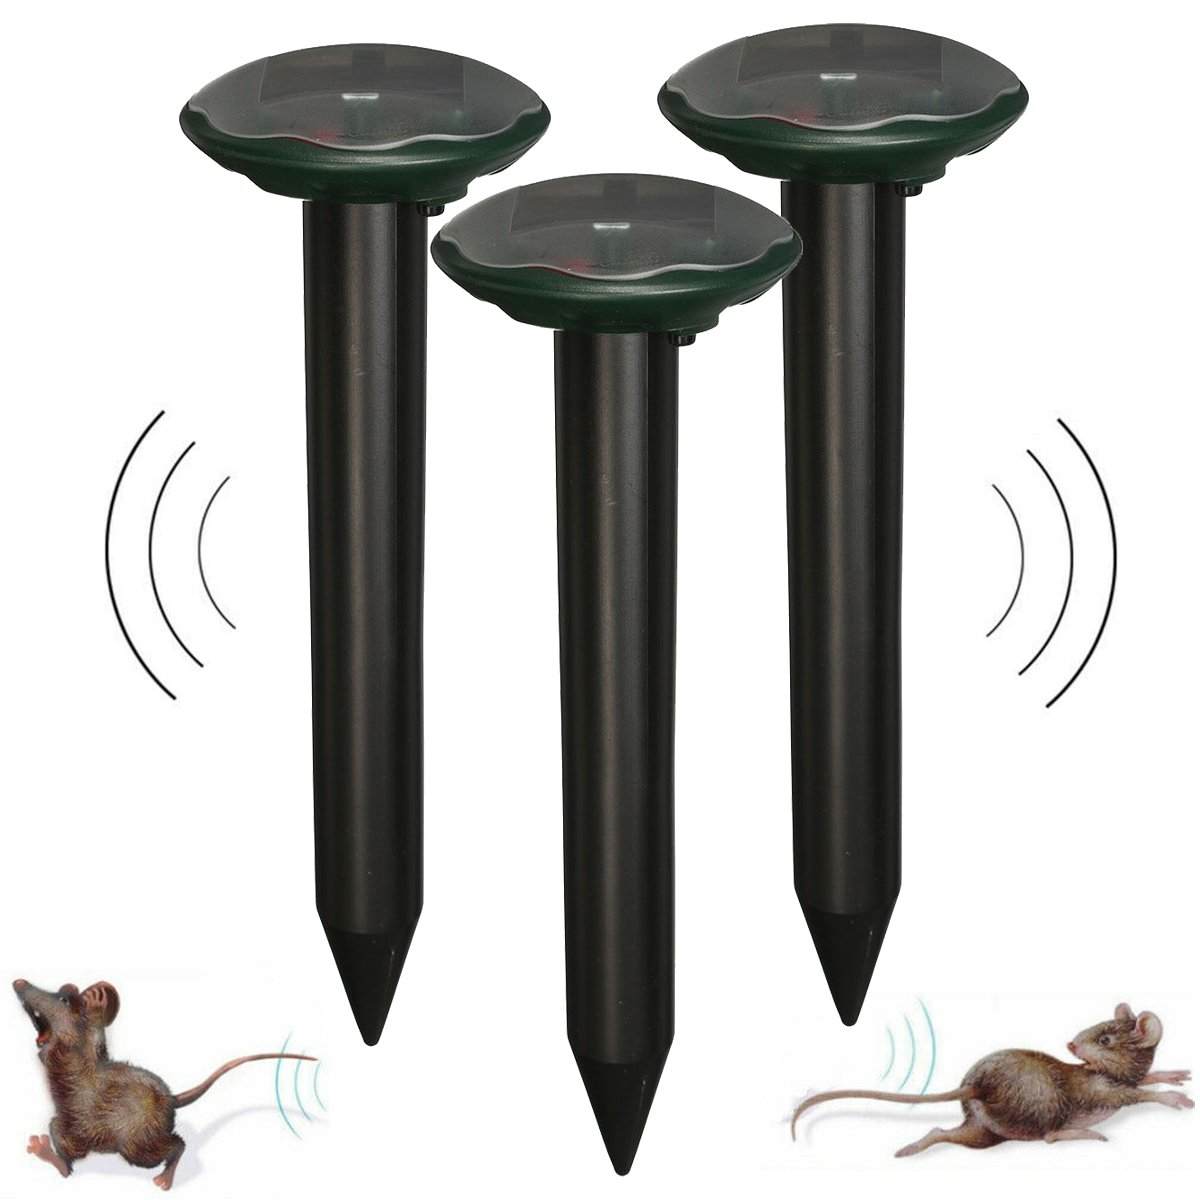 3x Solar Power Ultrasonic Pest Repeller Yard Animal Mouse Mole Rodent Repellent Snake-repelling Device